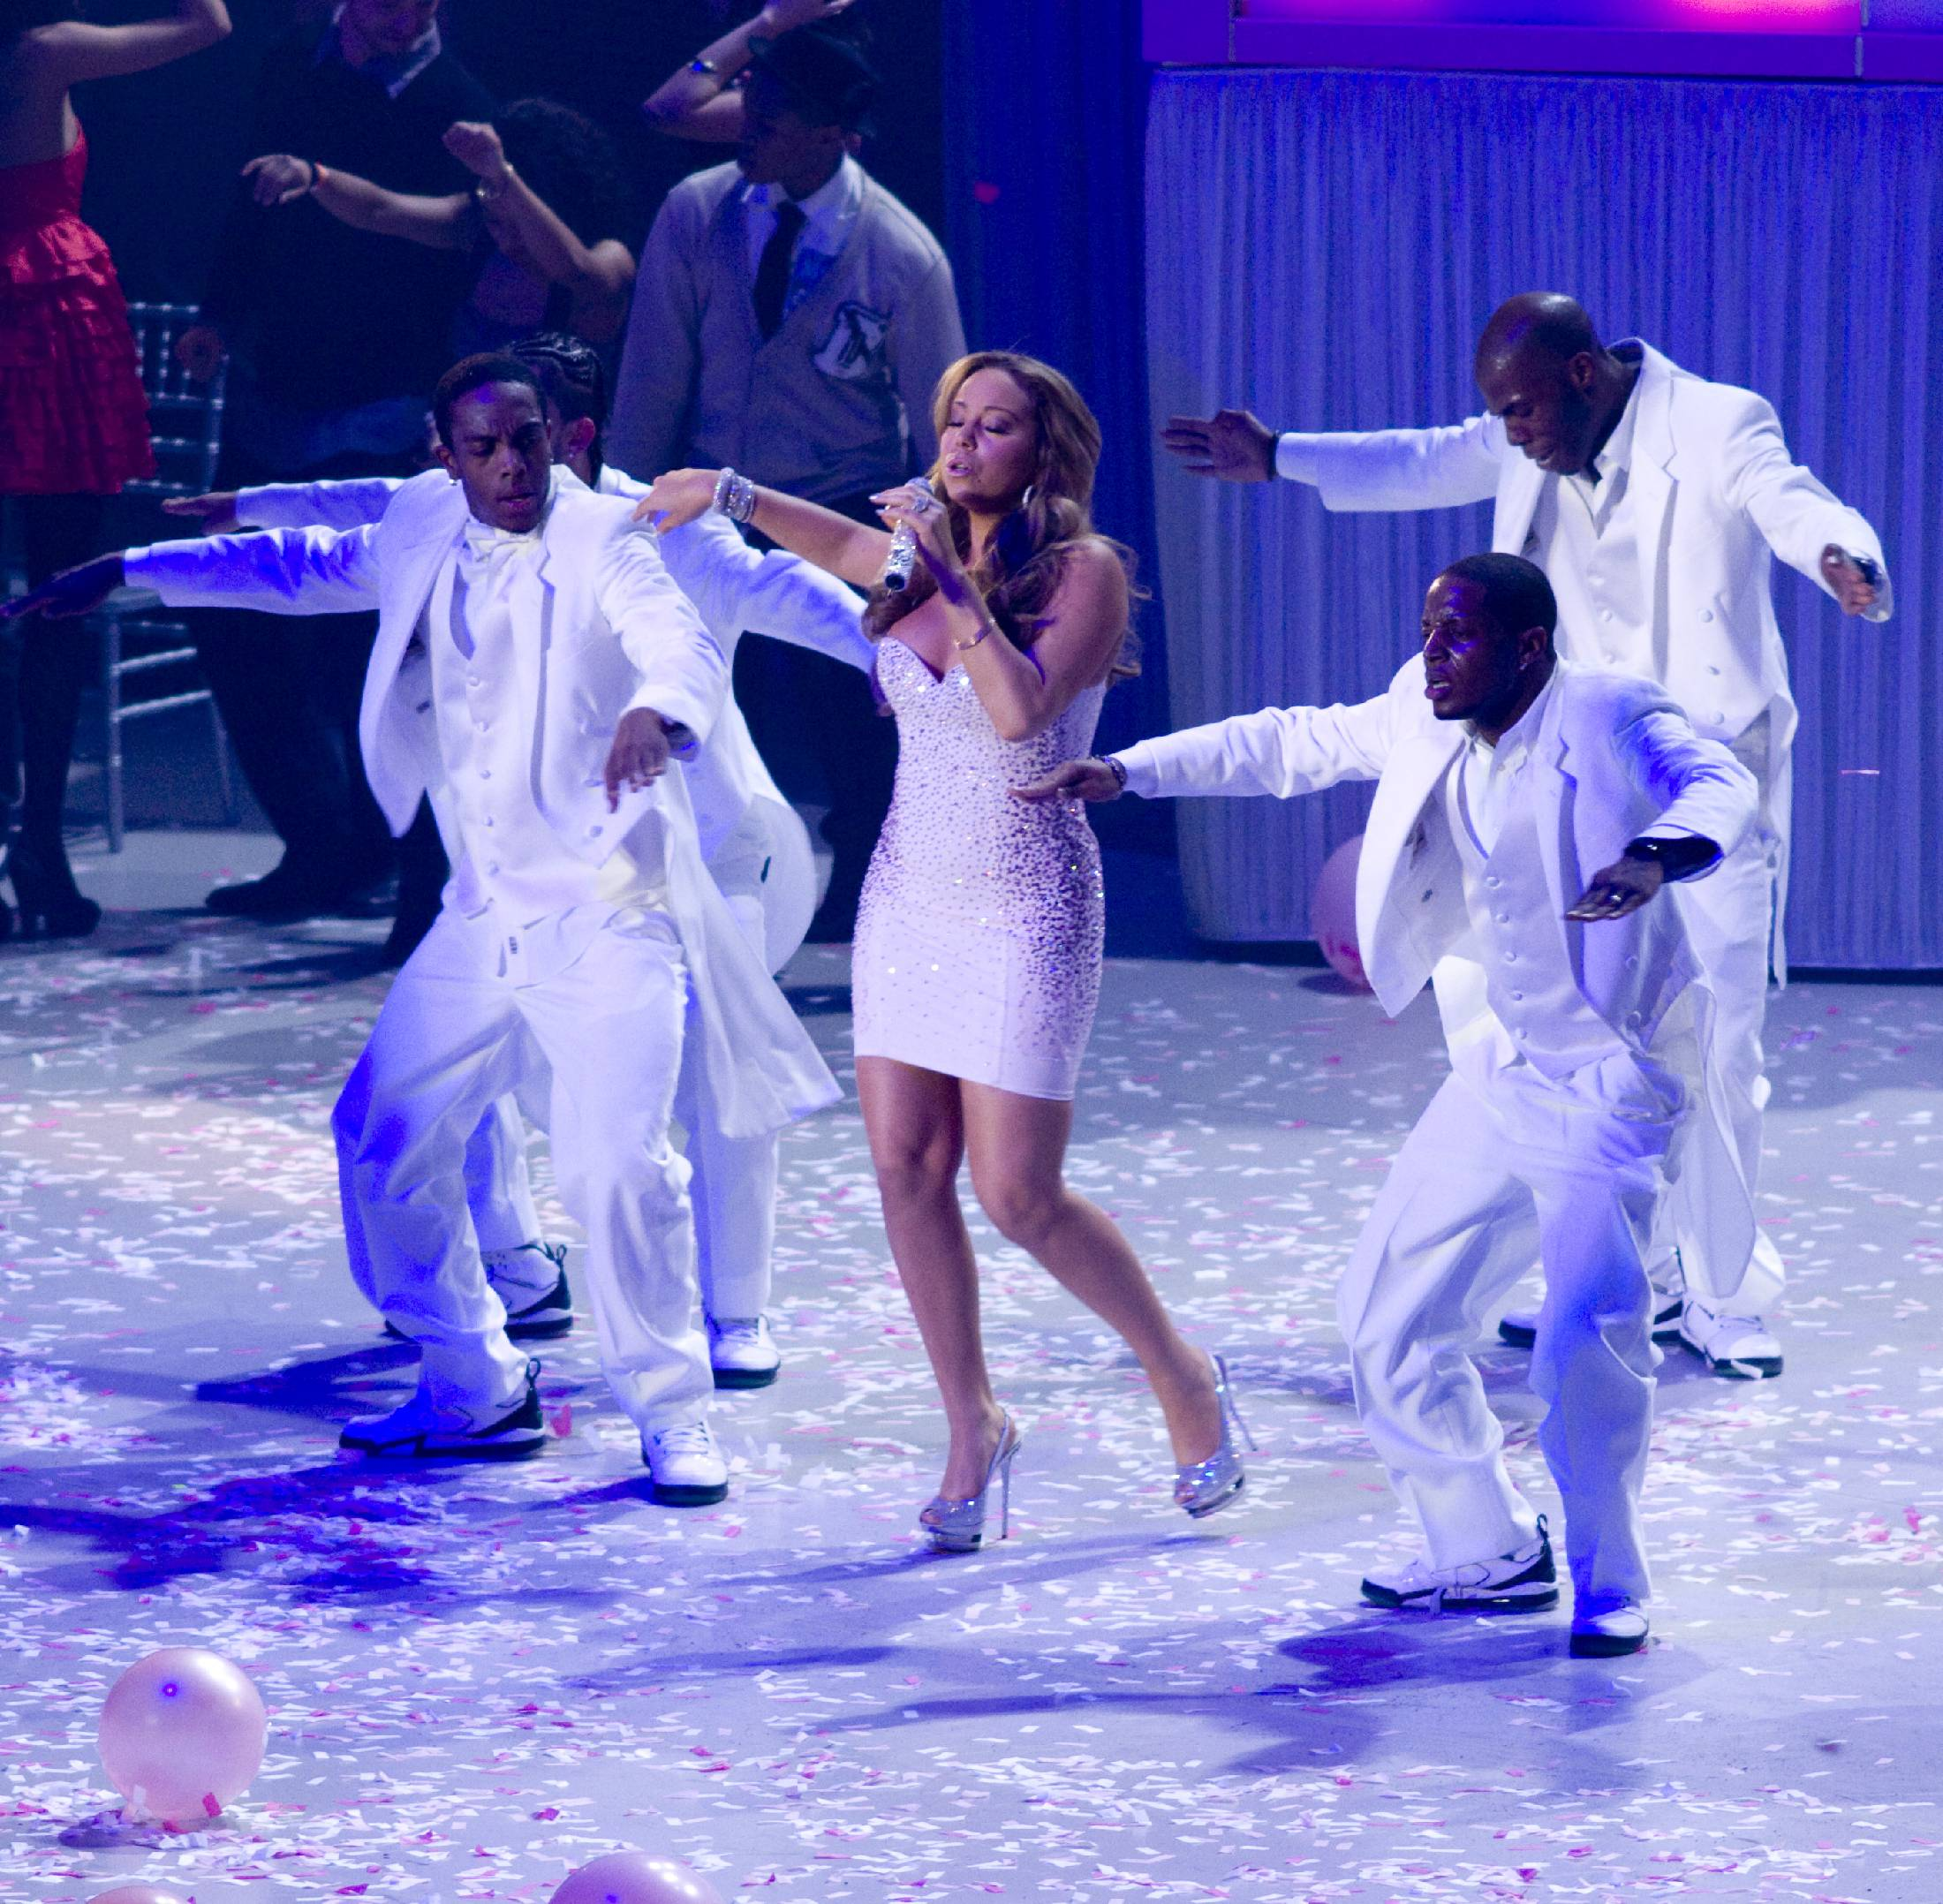 53387_Mariah_Carey_performs_at_Madison_Square_Garden_in_New_York_City-19_122_114lo.jpg